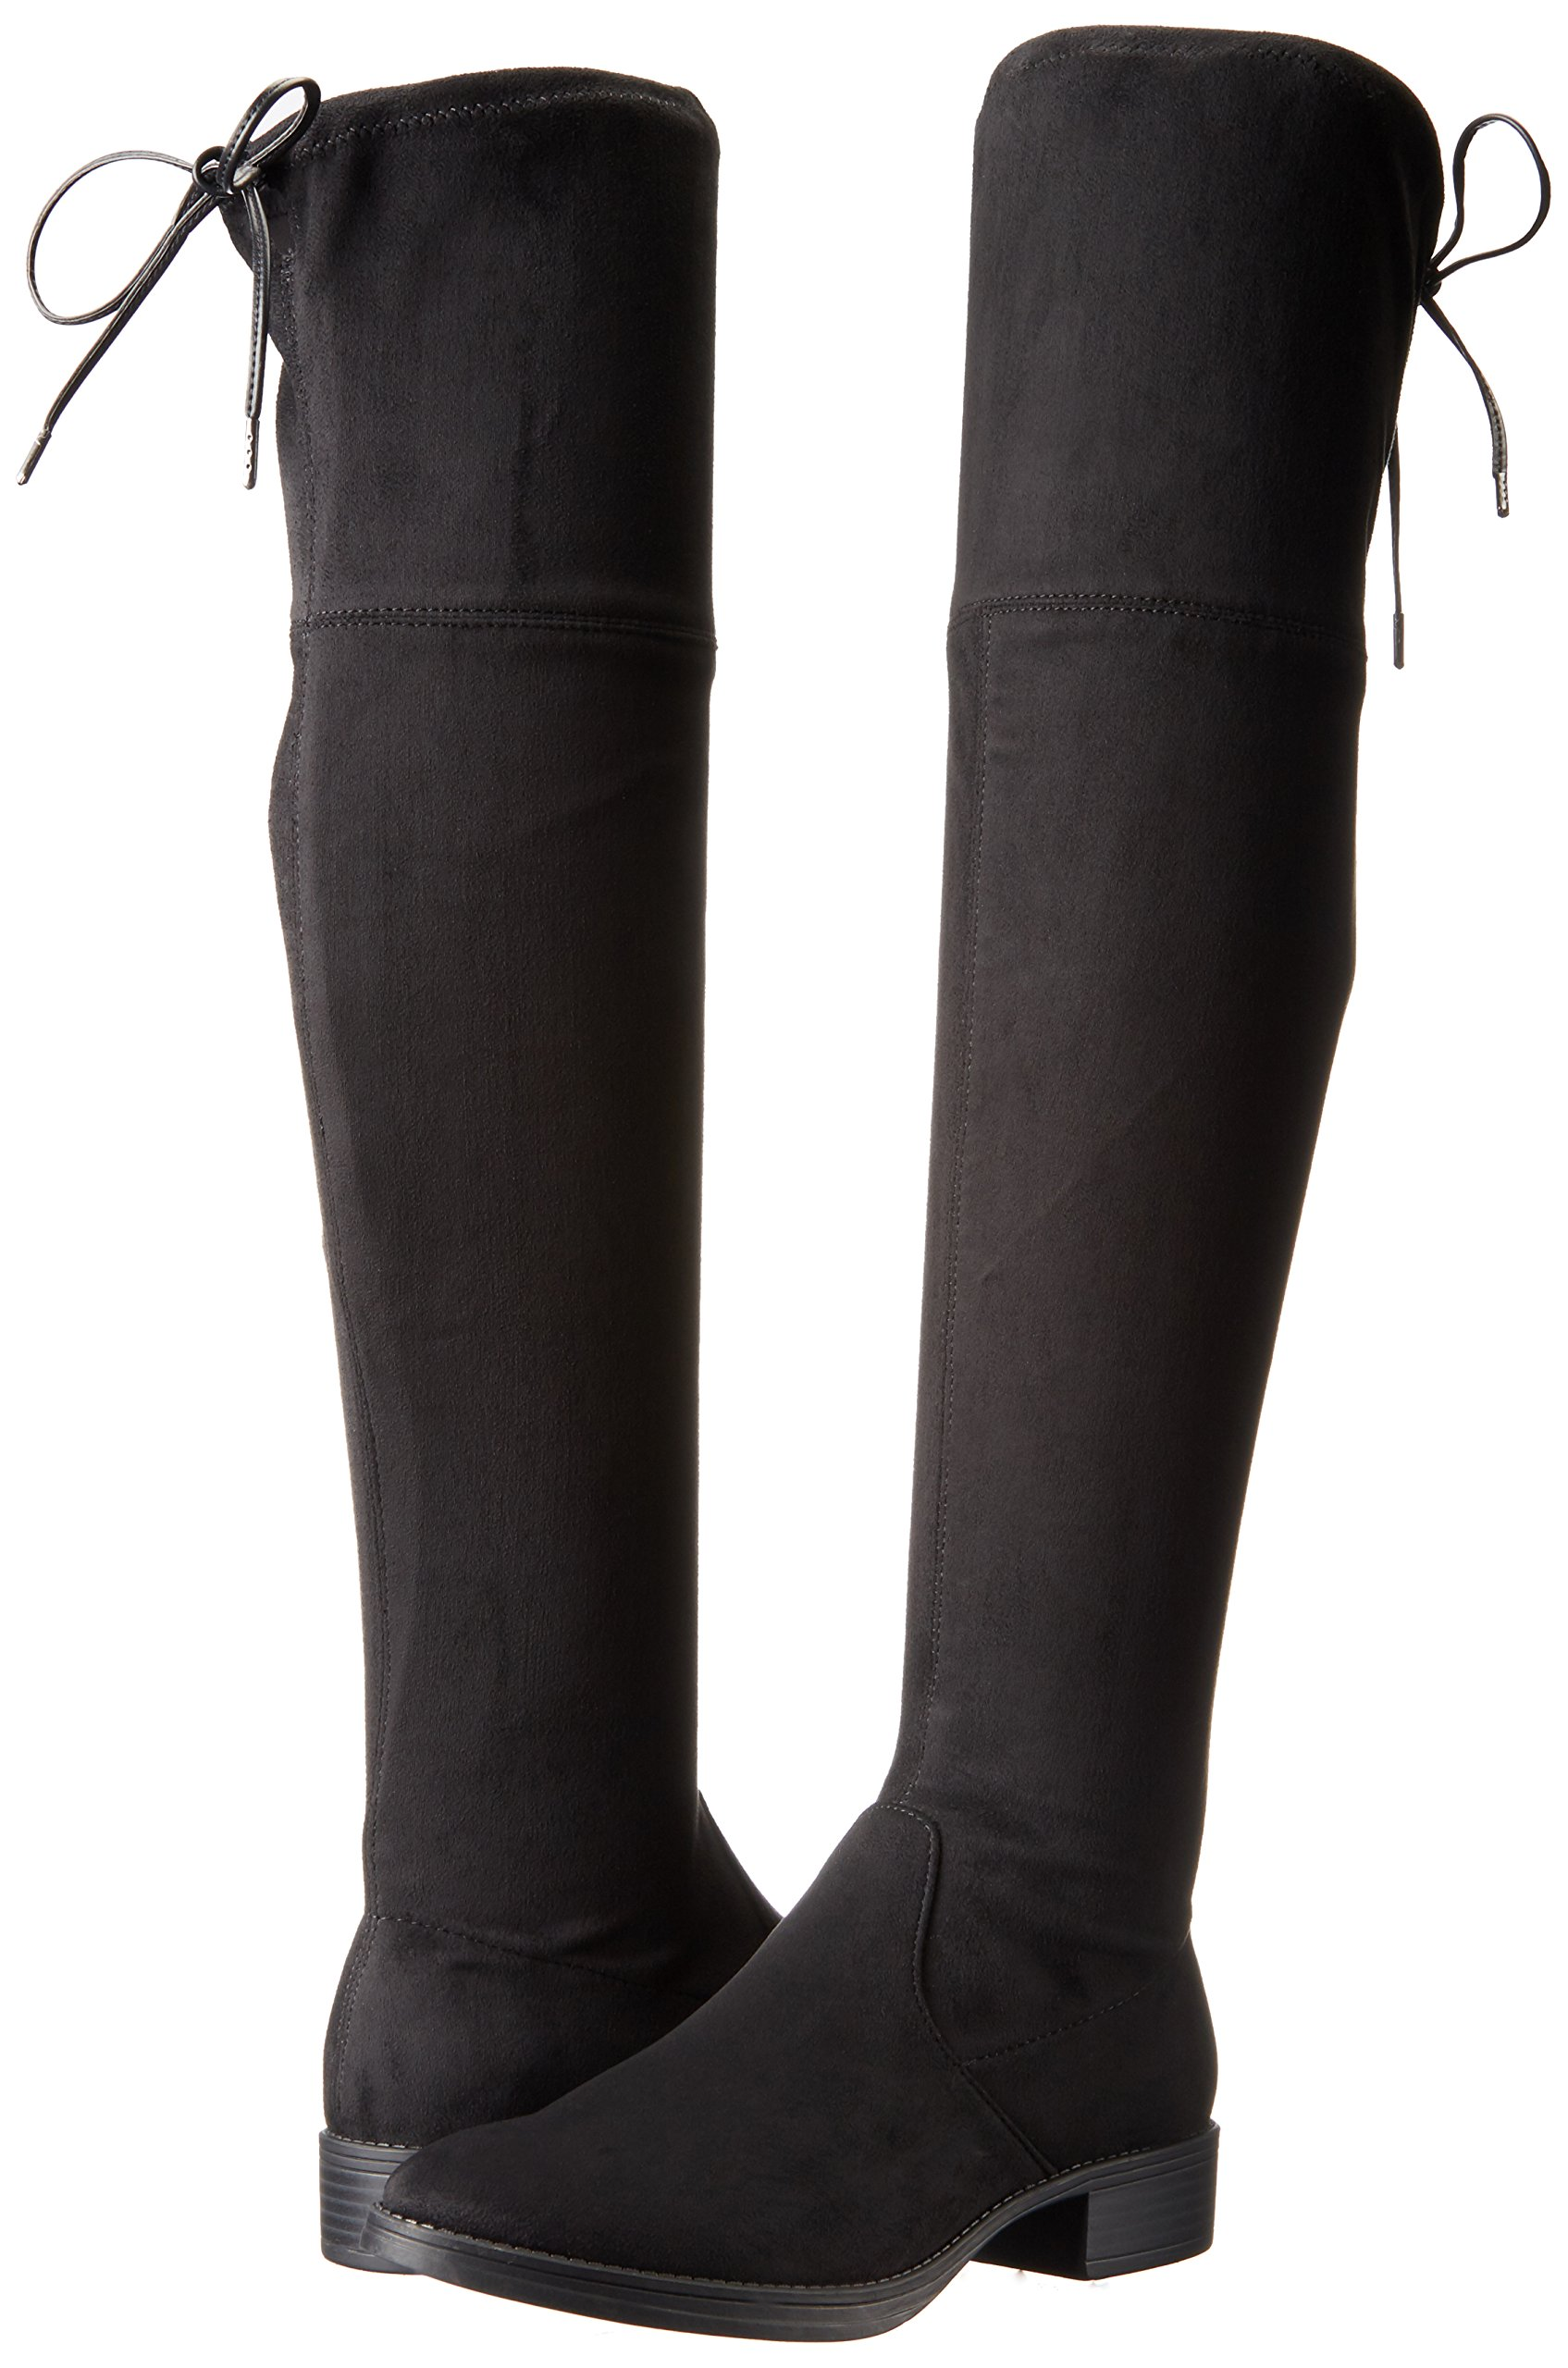 Circus by Sam Edelman Women's Peyton Over The Knee Boot, Black, 6.5 Medium US by Circus by Sam Edelman (Image #6)